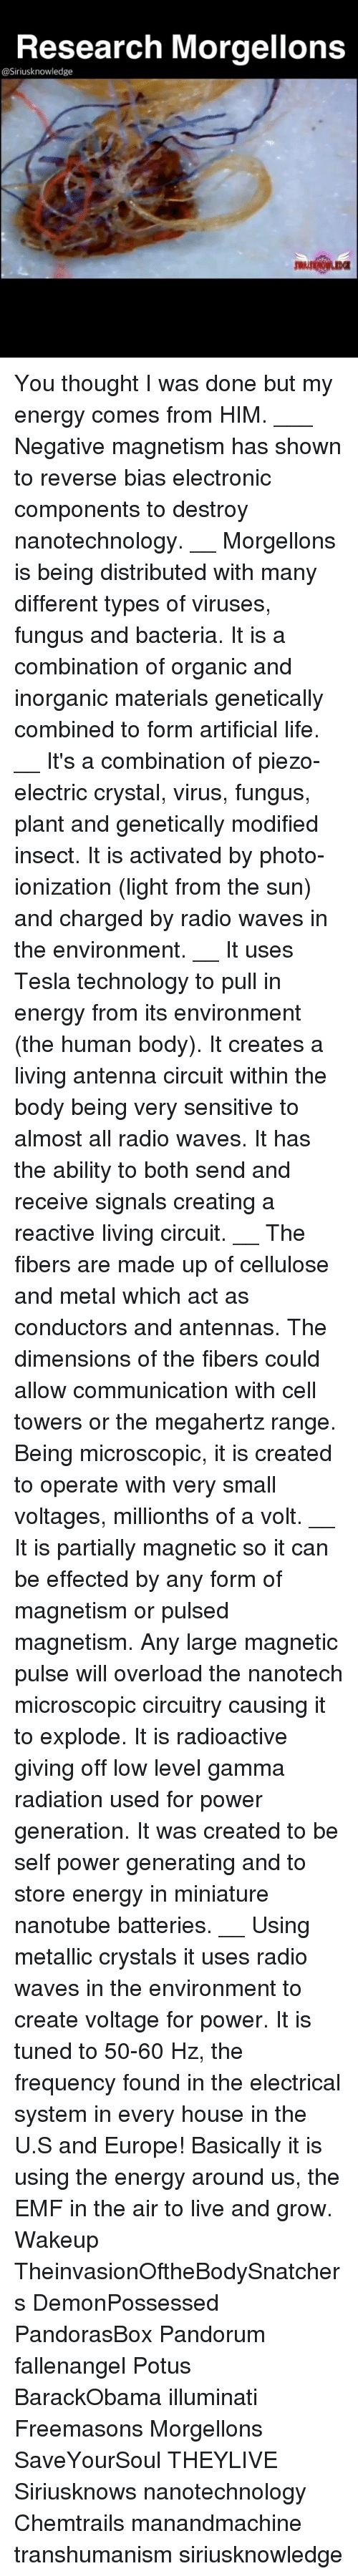 Research Morgellons You Thought I Was Done but My Energy Comes From